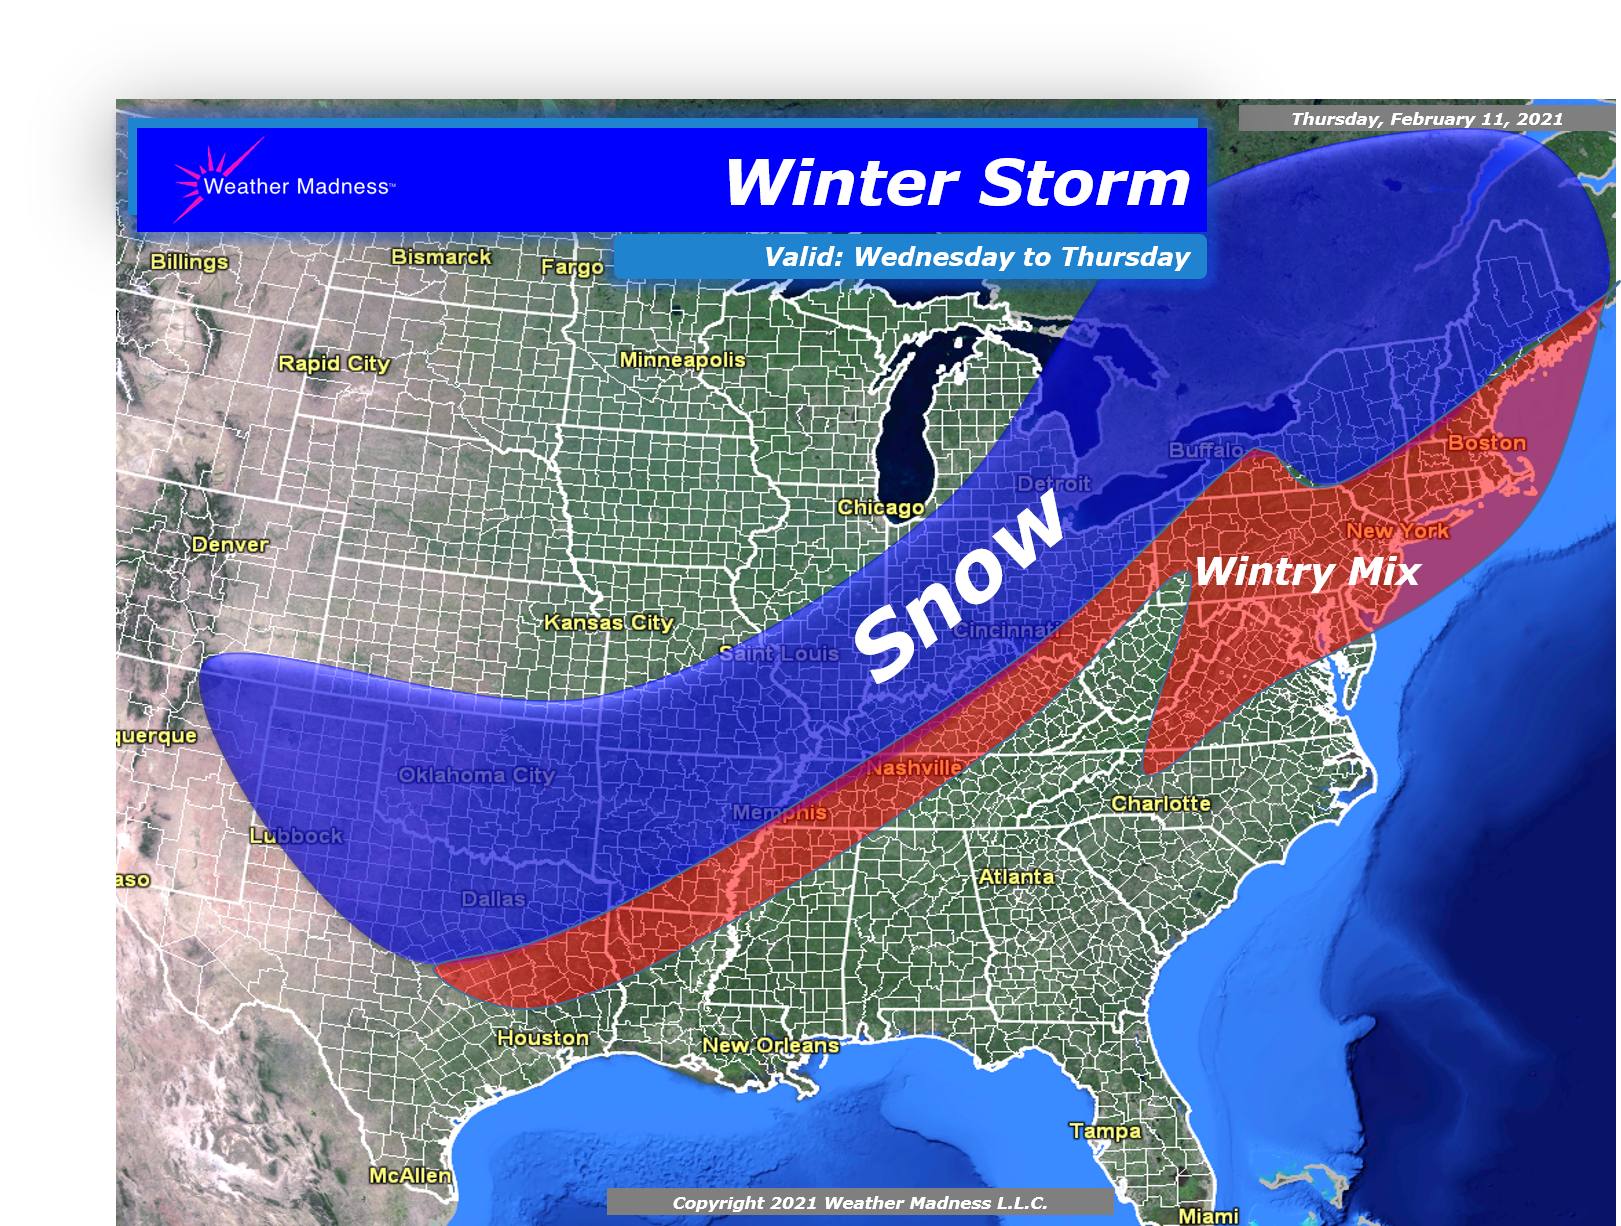 A Look at the Storm Later Next Week